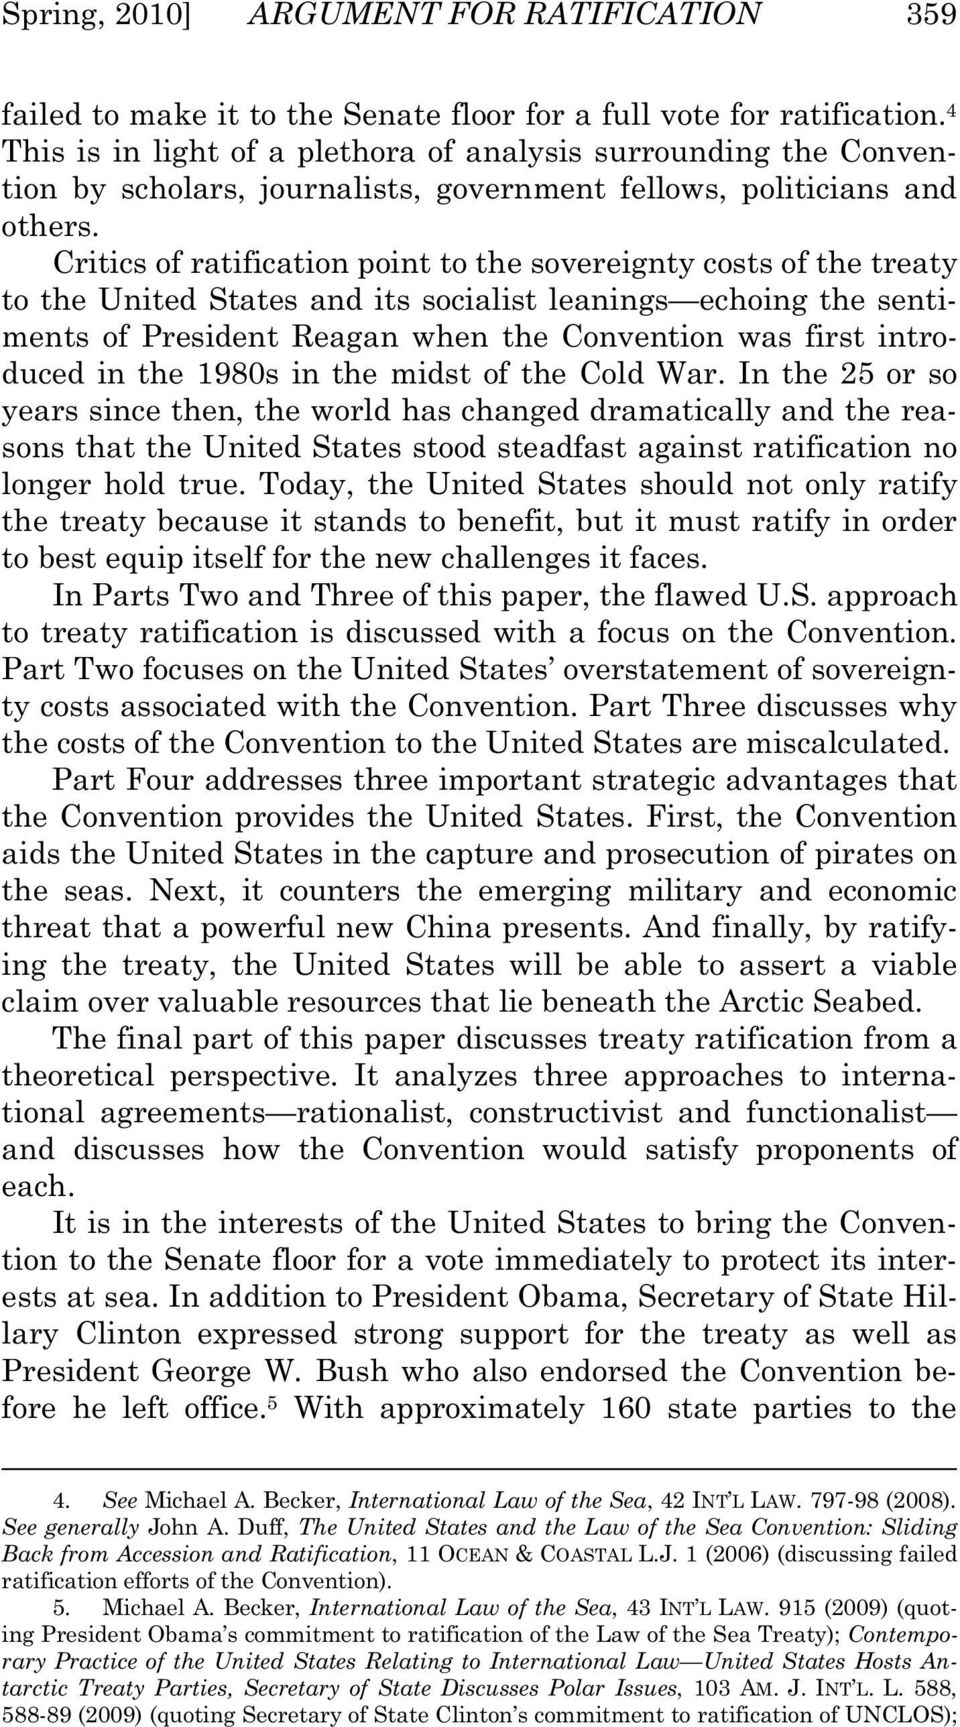 Critics of ratification point to the sovereignty costs of the treaty to the United States and its socialist leanings echoing the sentiments of President Reagan when the Convention was first